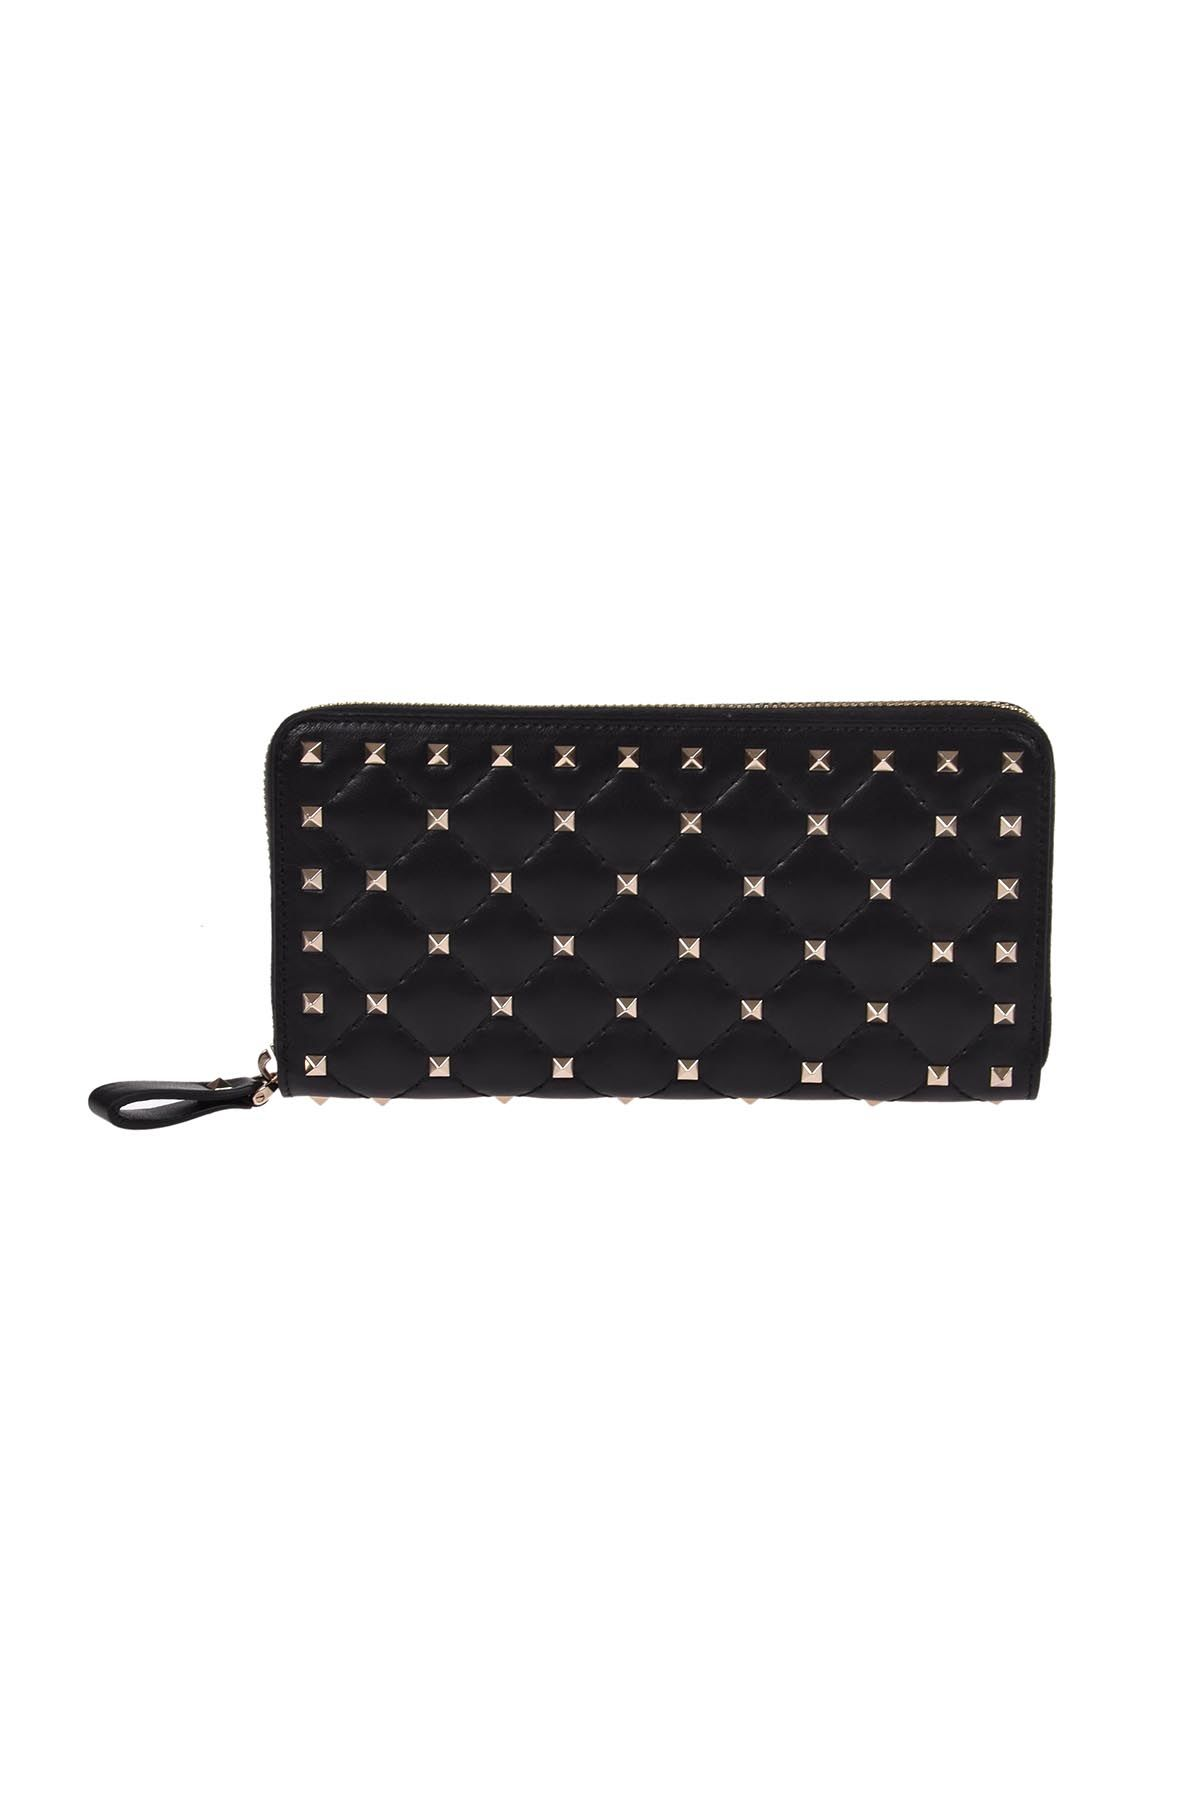 Valentino Garavani Rockstud Spikes Zip Around Wallet